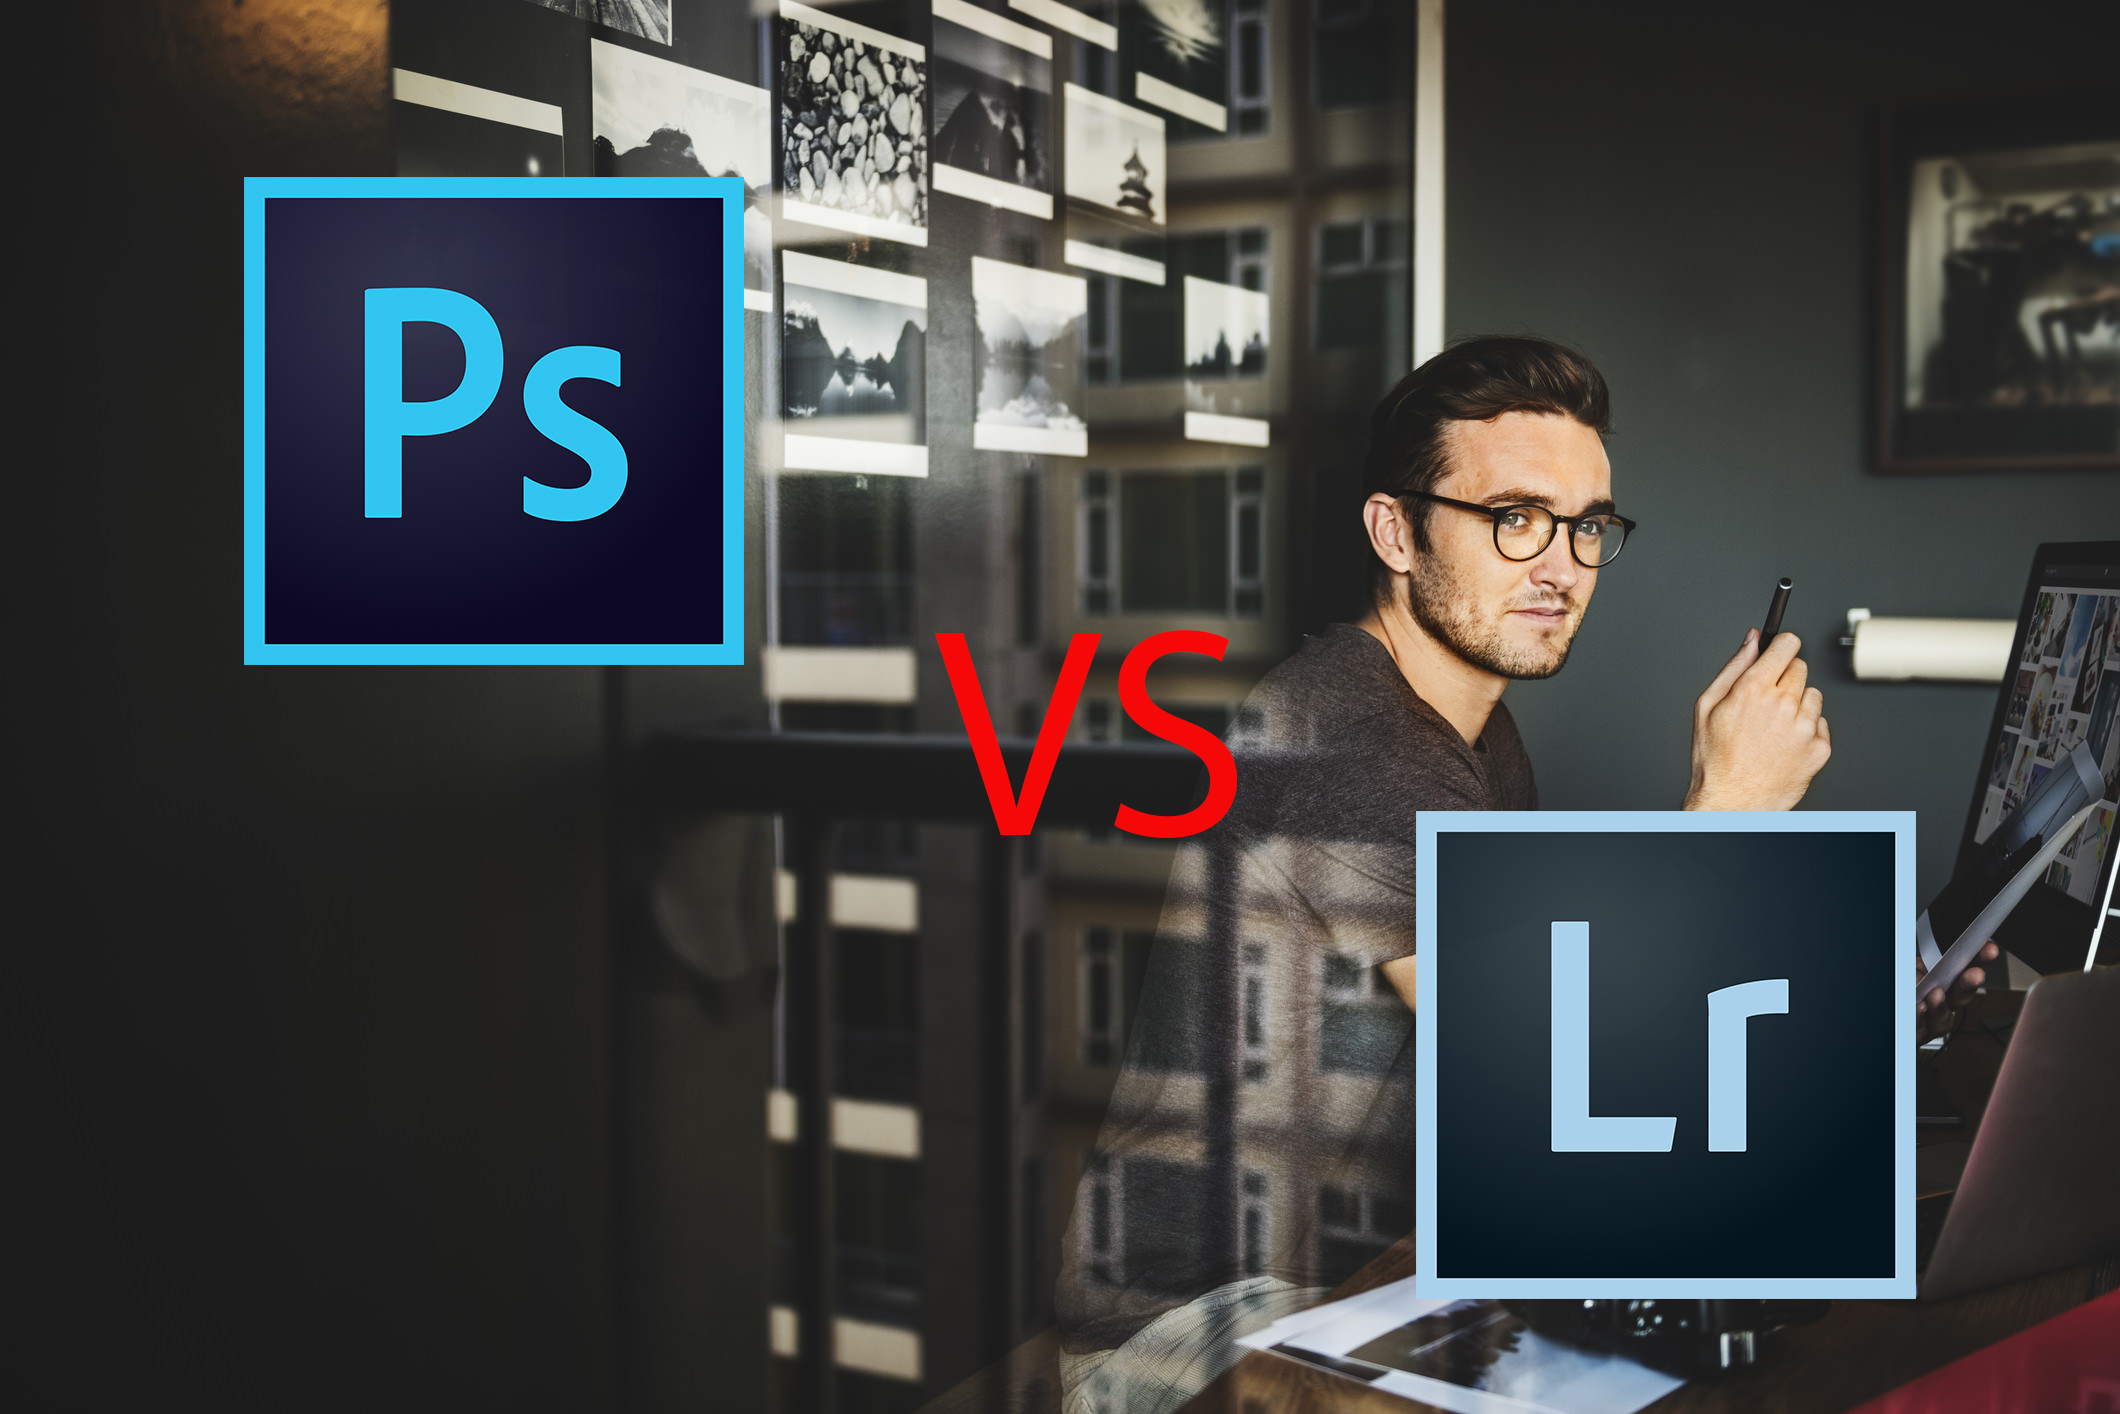 Lightroom vs Photoshop Comparison image